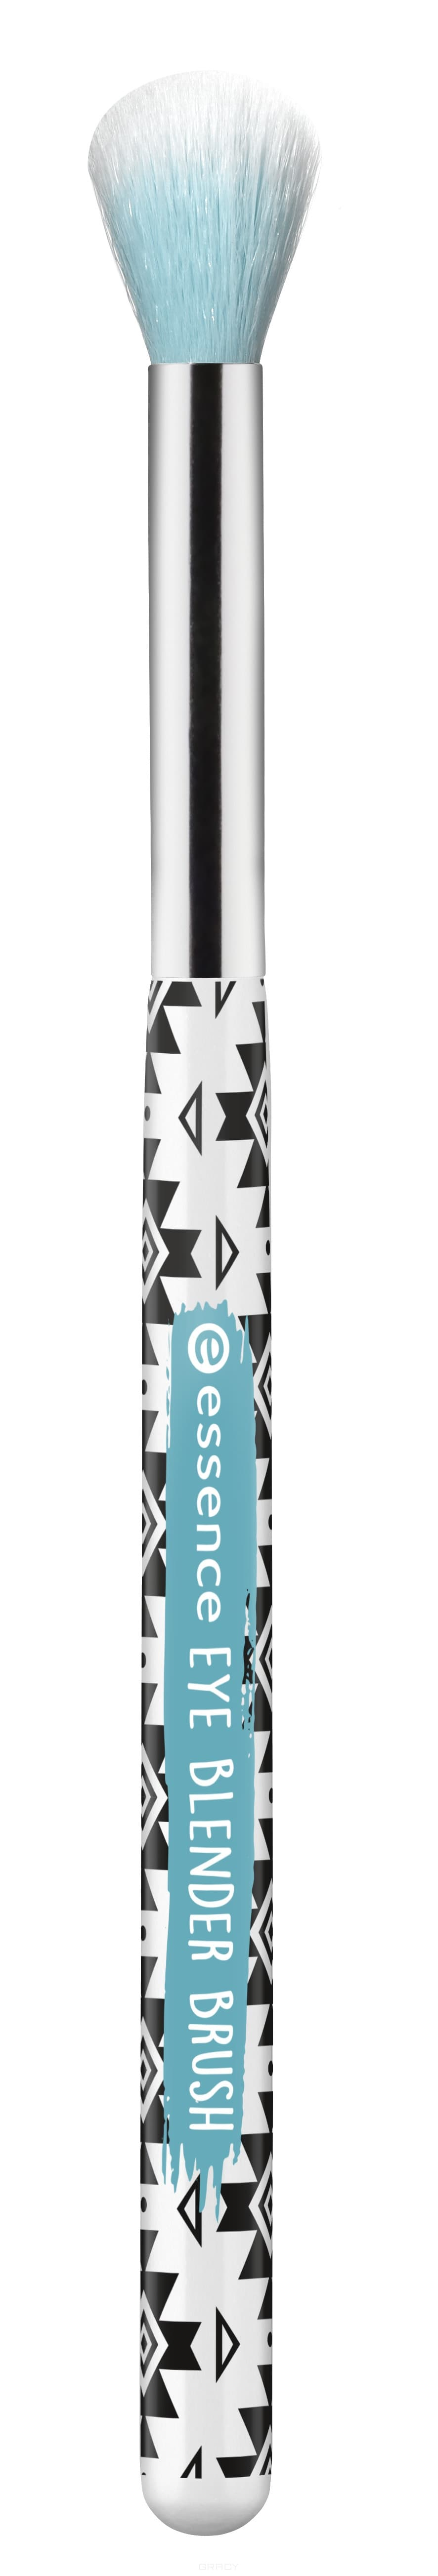 Essence Кисть для растушевки теней Eye Blender Brush